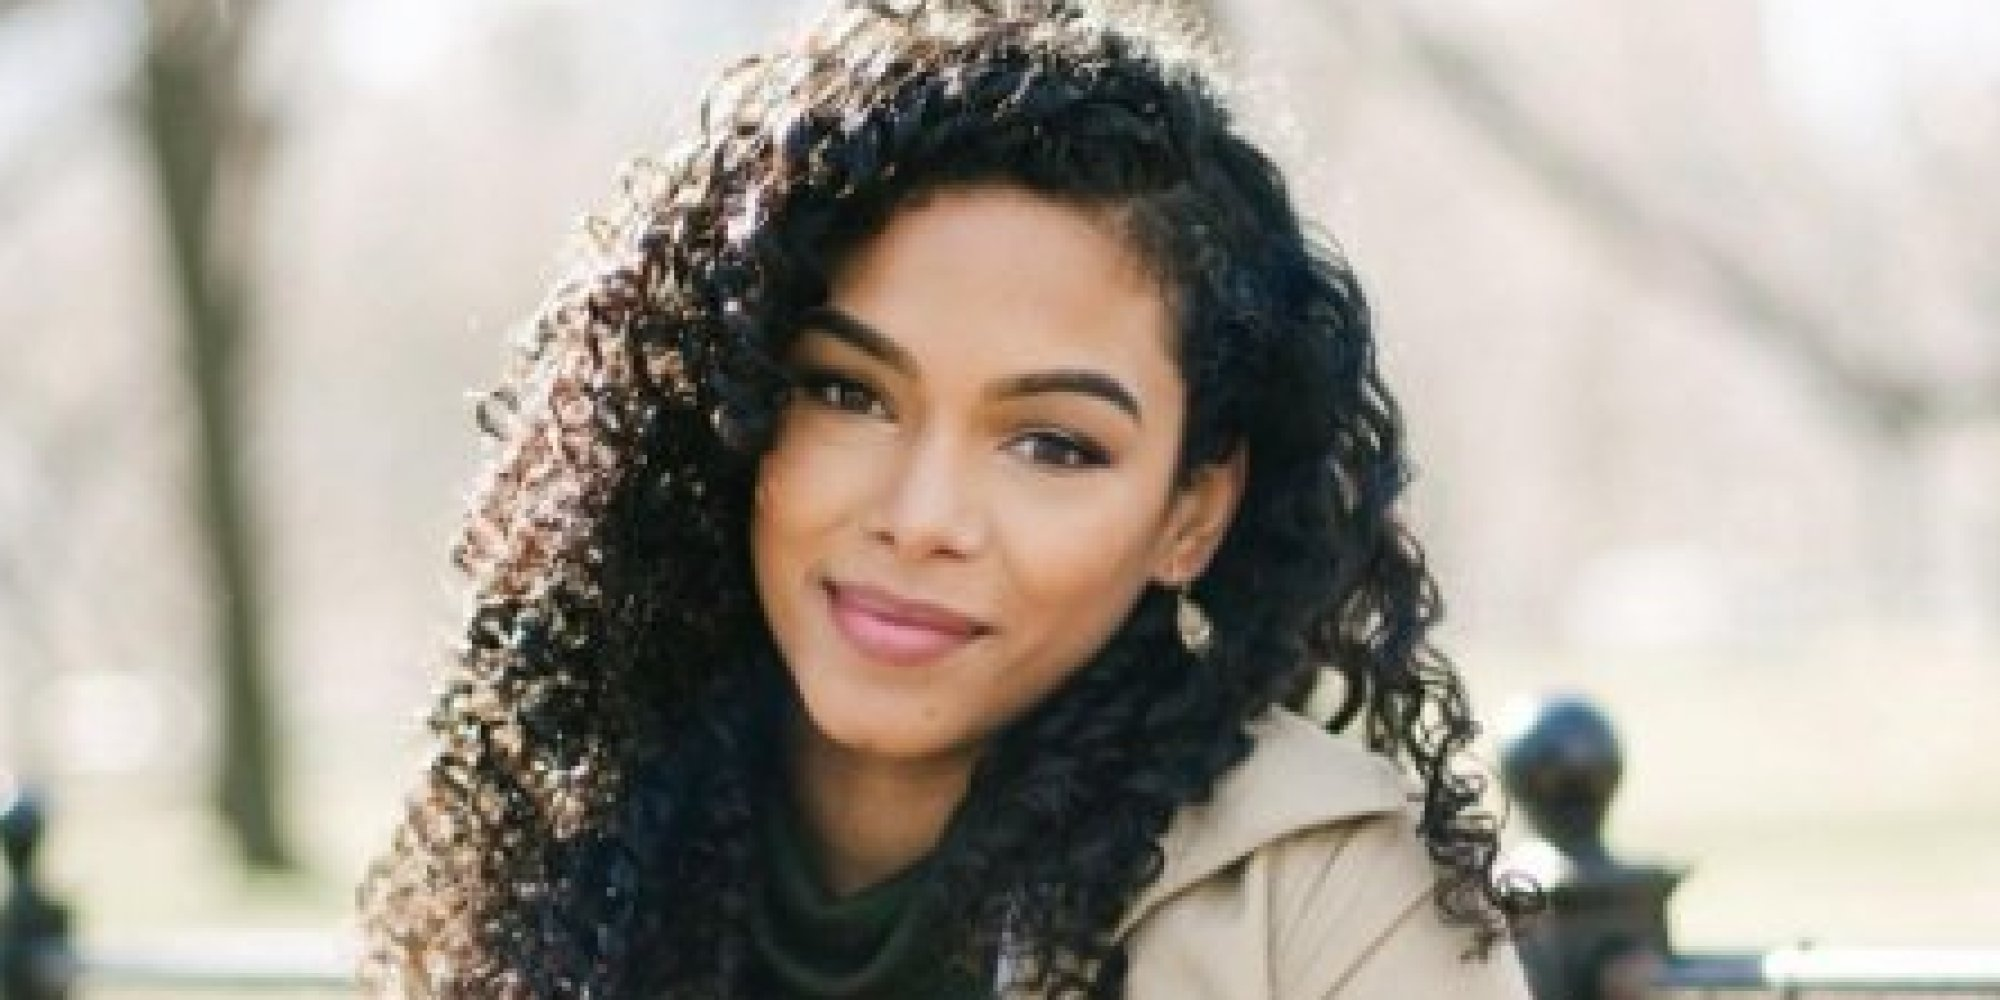 Dominican Hair Style: My Journey To Embracing My Curly Dominican Hair